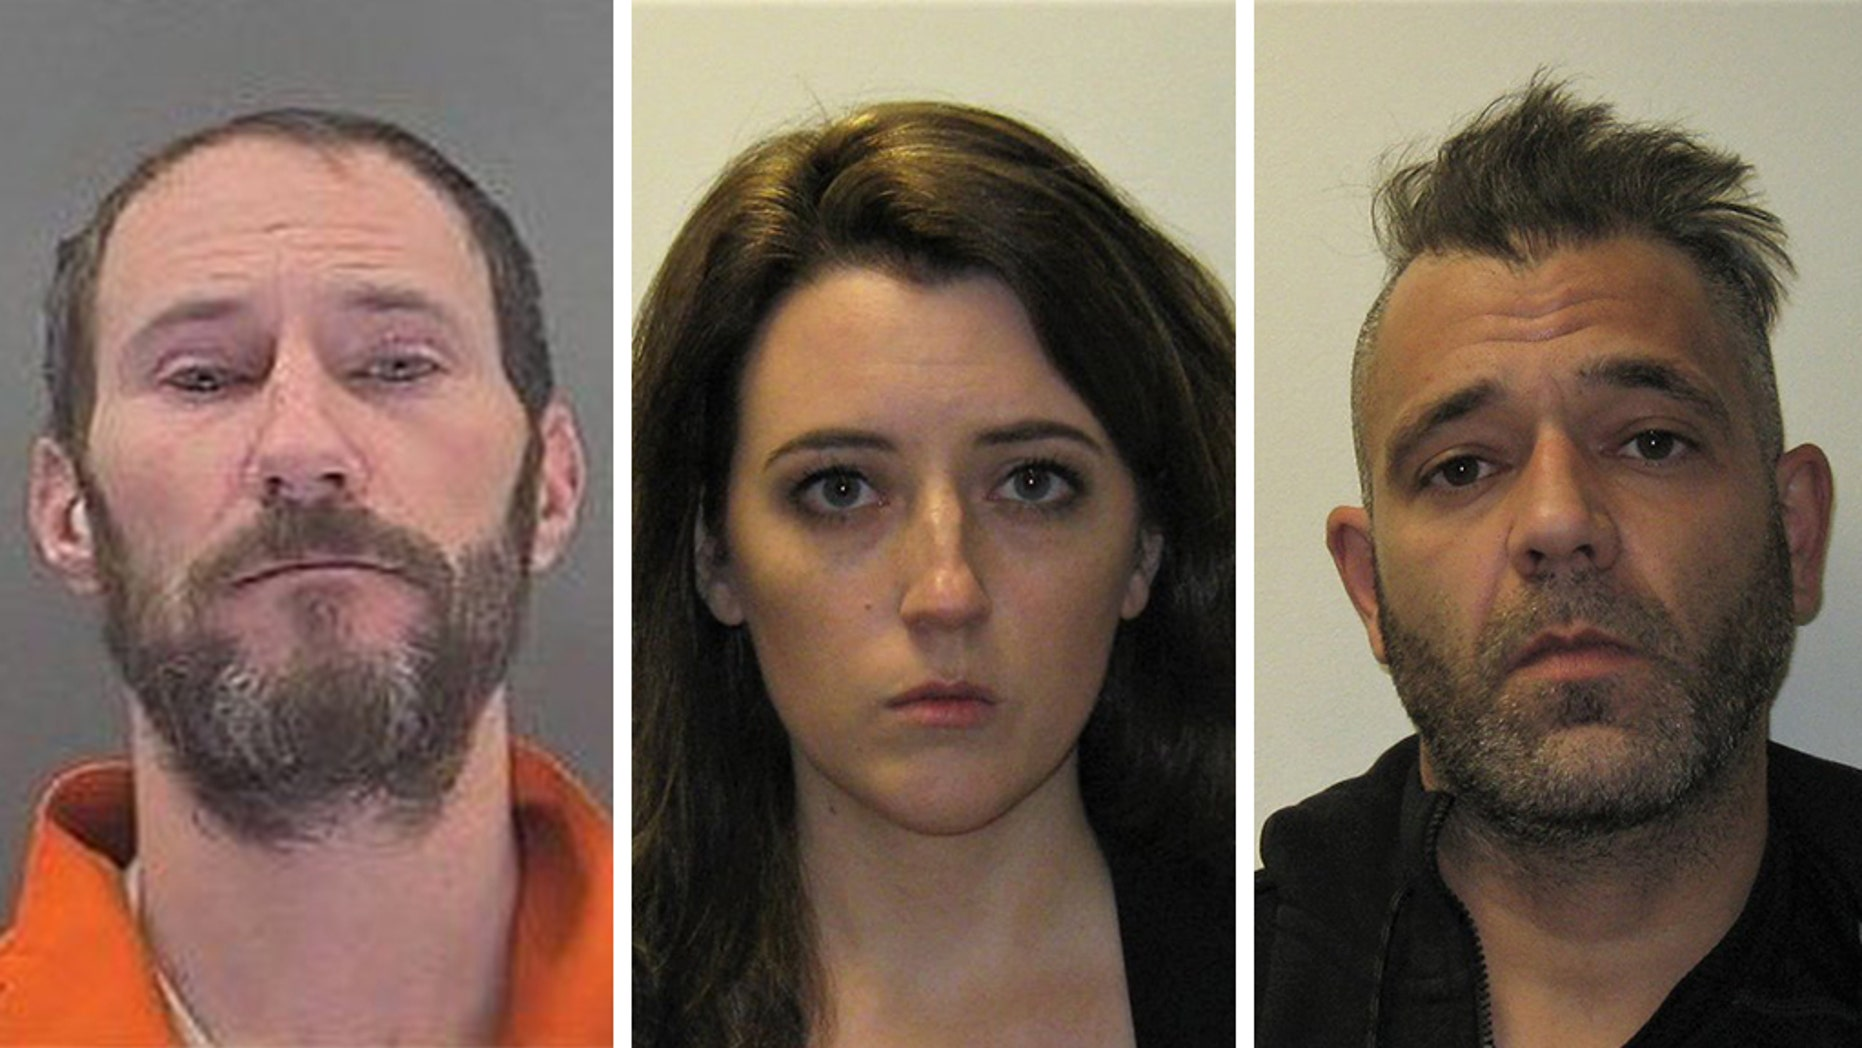 Investigators said, from left, Johnny Bobbitt, a homeless military veteran, Katelyn McClure and Mark D'Amico split $400,000 in GoFundMe contributions and spent lavishly — as they had planned all along — including on a BMW, designer bags and trips to Las Vegas and elsewhere. (Burlington County Prosecutor's Office)